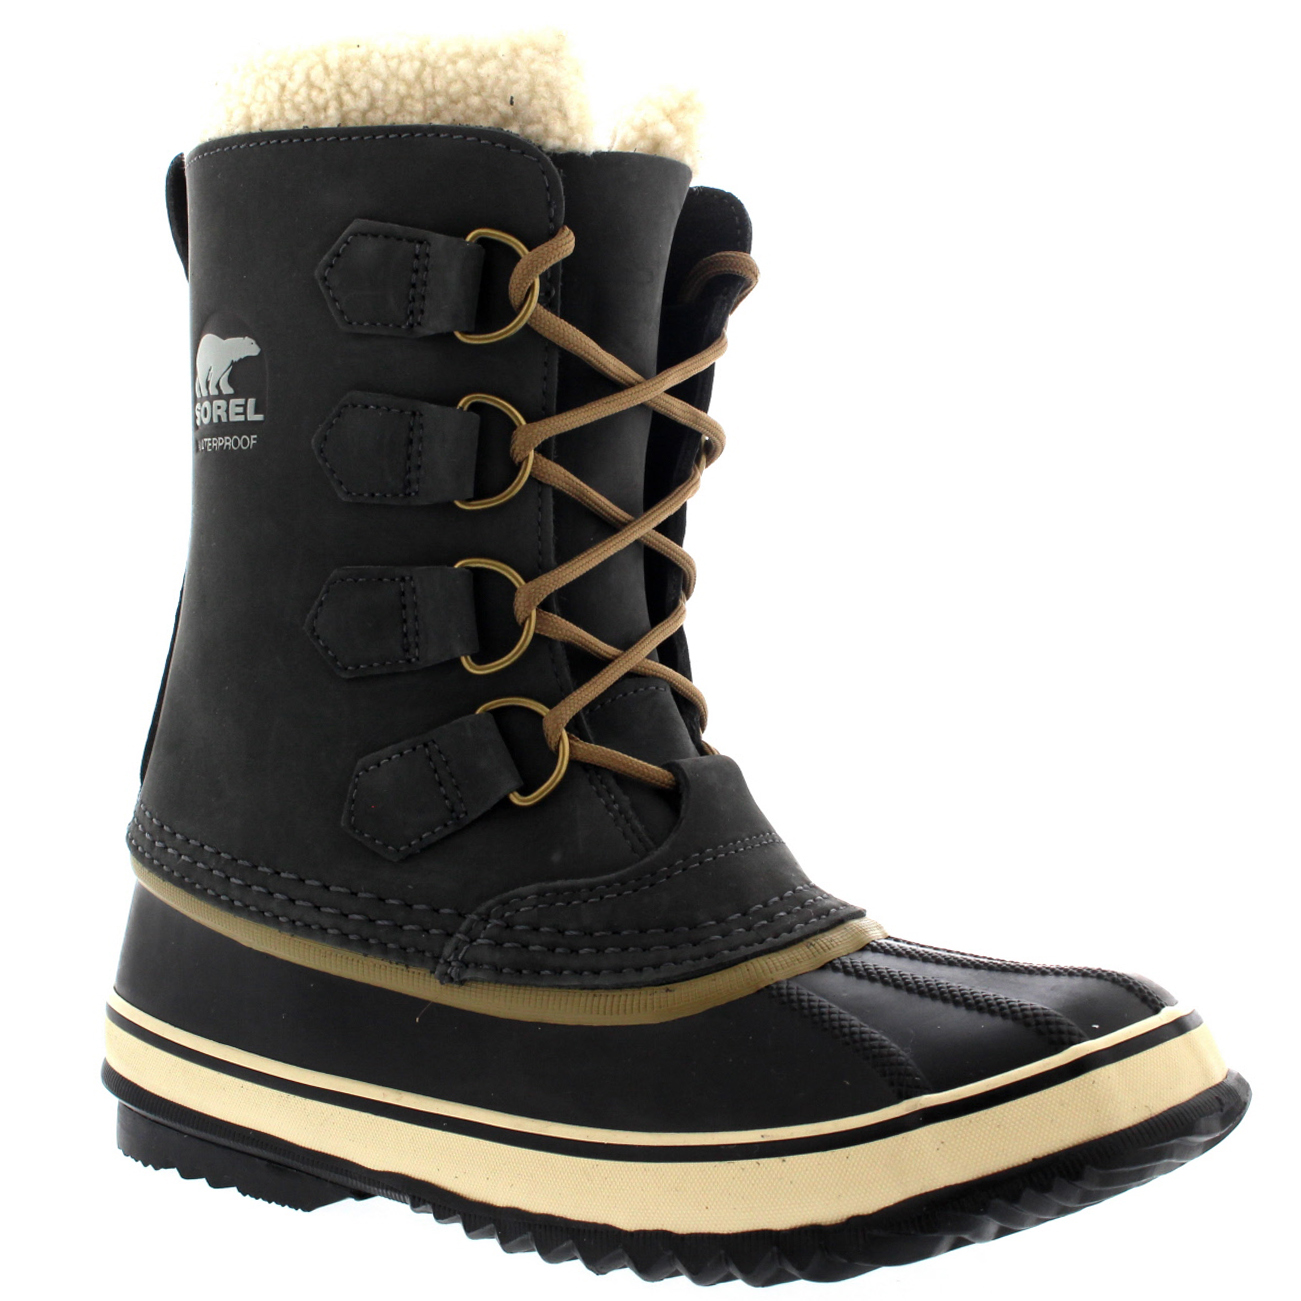 Sorel Leather Mid-Calf Boots free shipping low price lWul4m2a1M